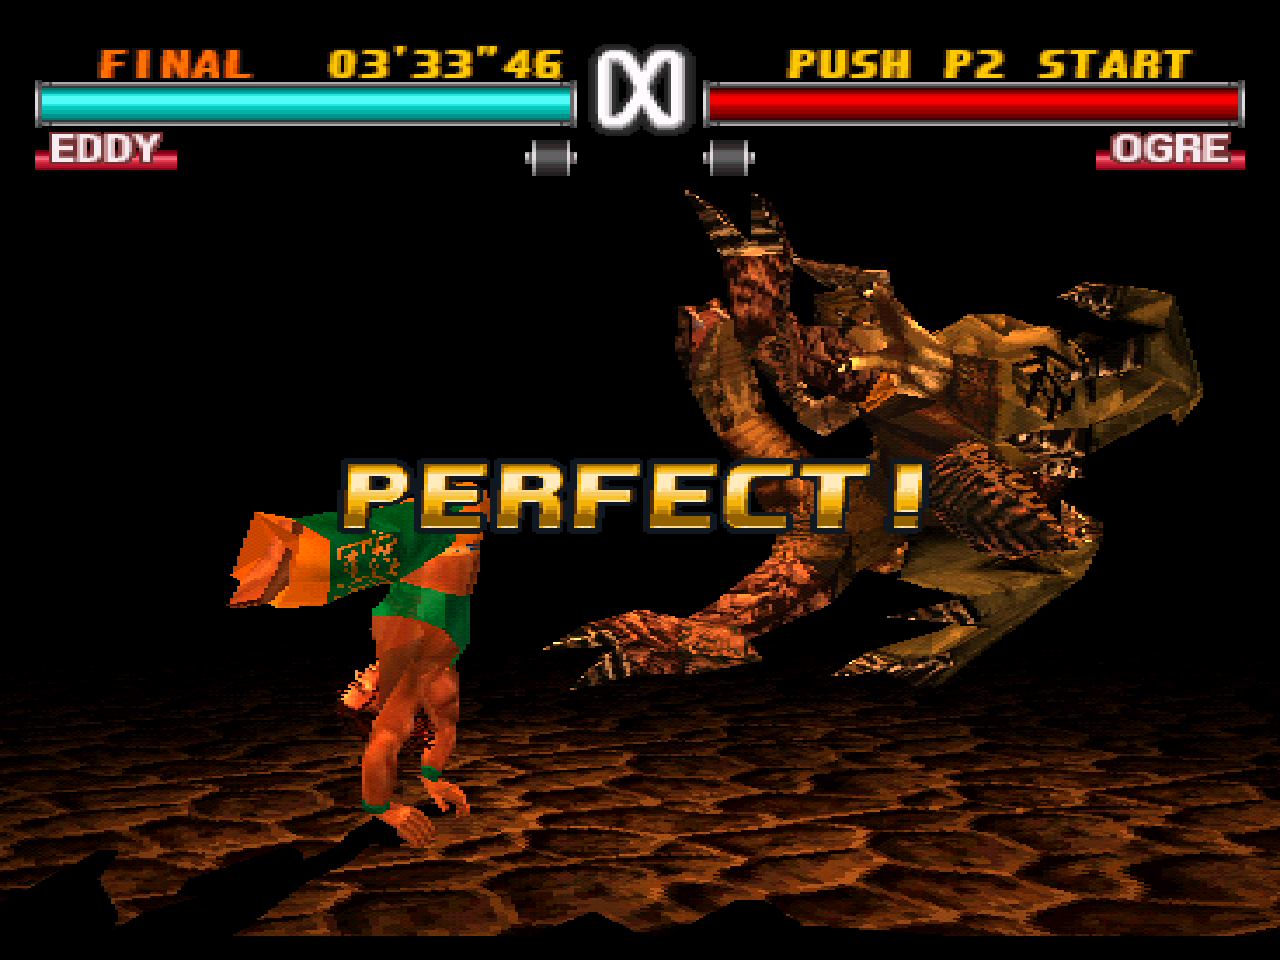 https://s3.eu-west-3.amazonaws.com/games.anthony-dessalles.com/Tekken 3 PS1 2020 - Screenshots/Tekken 3-201204-182417.png